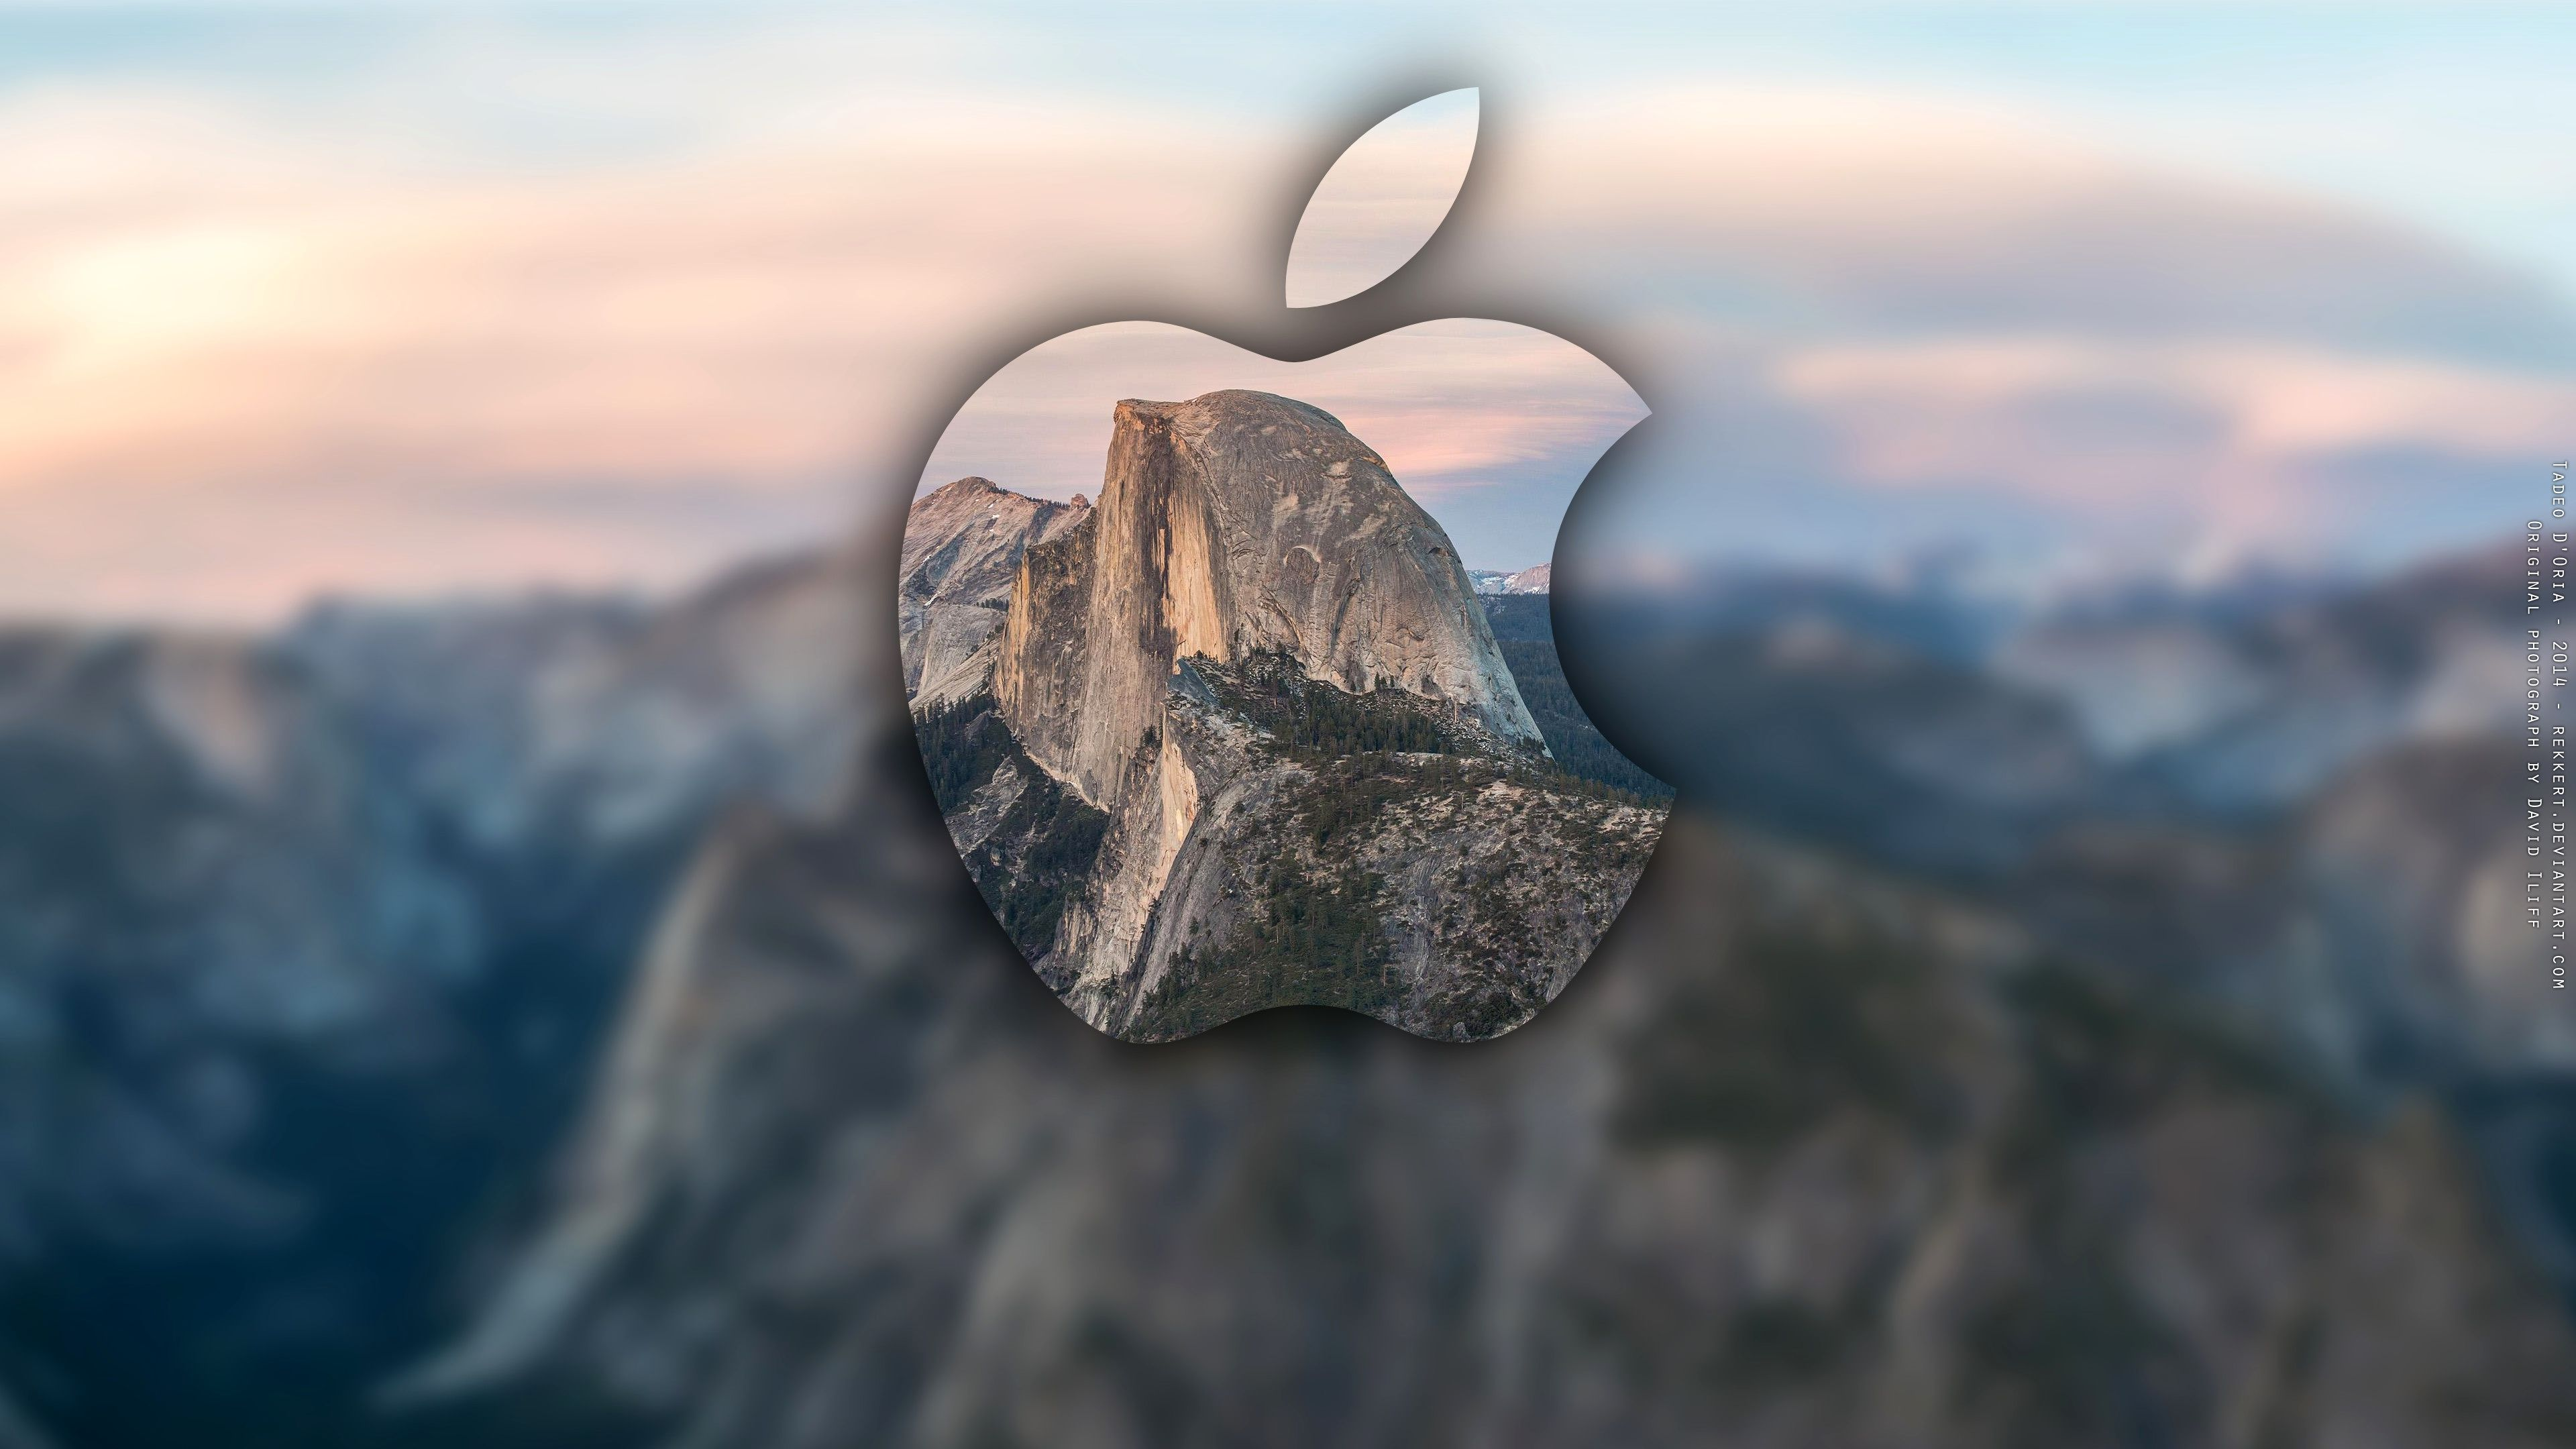 Mac Os Wallpaper 4k Download Ideas Di 2020